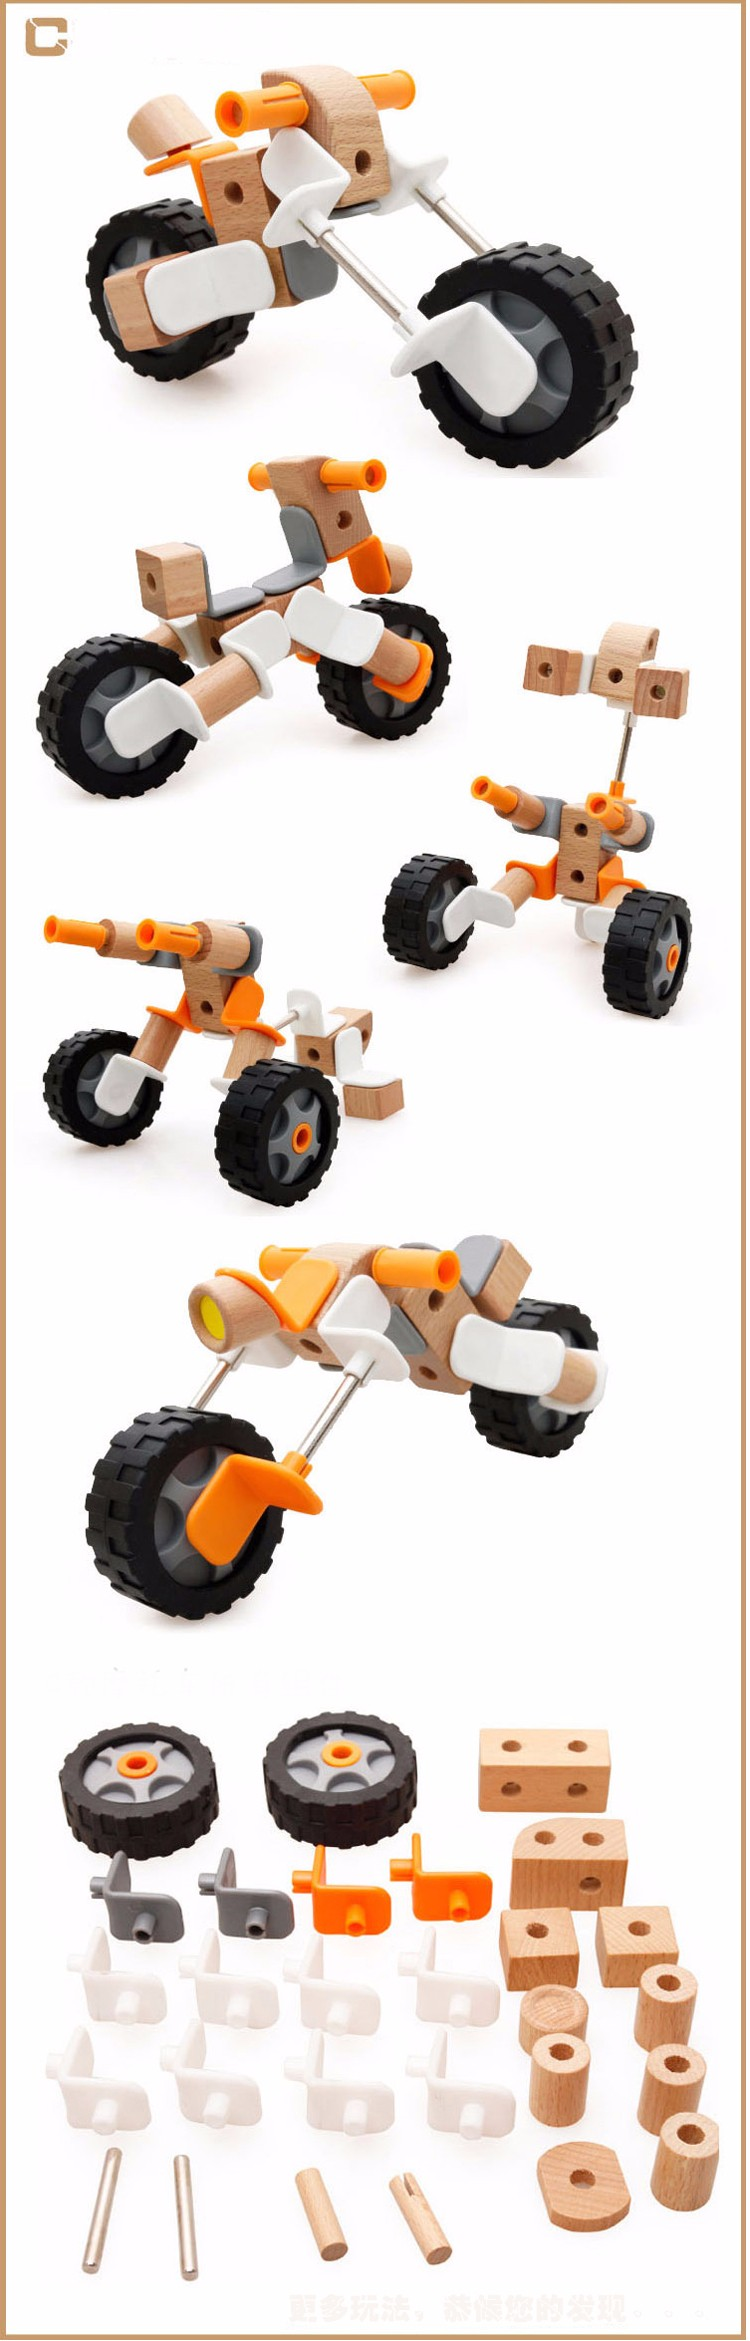 Robot kit educational toy engineering puzzle robotics diy toy